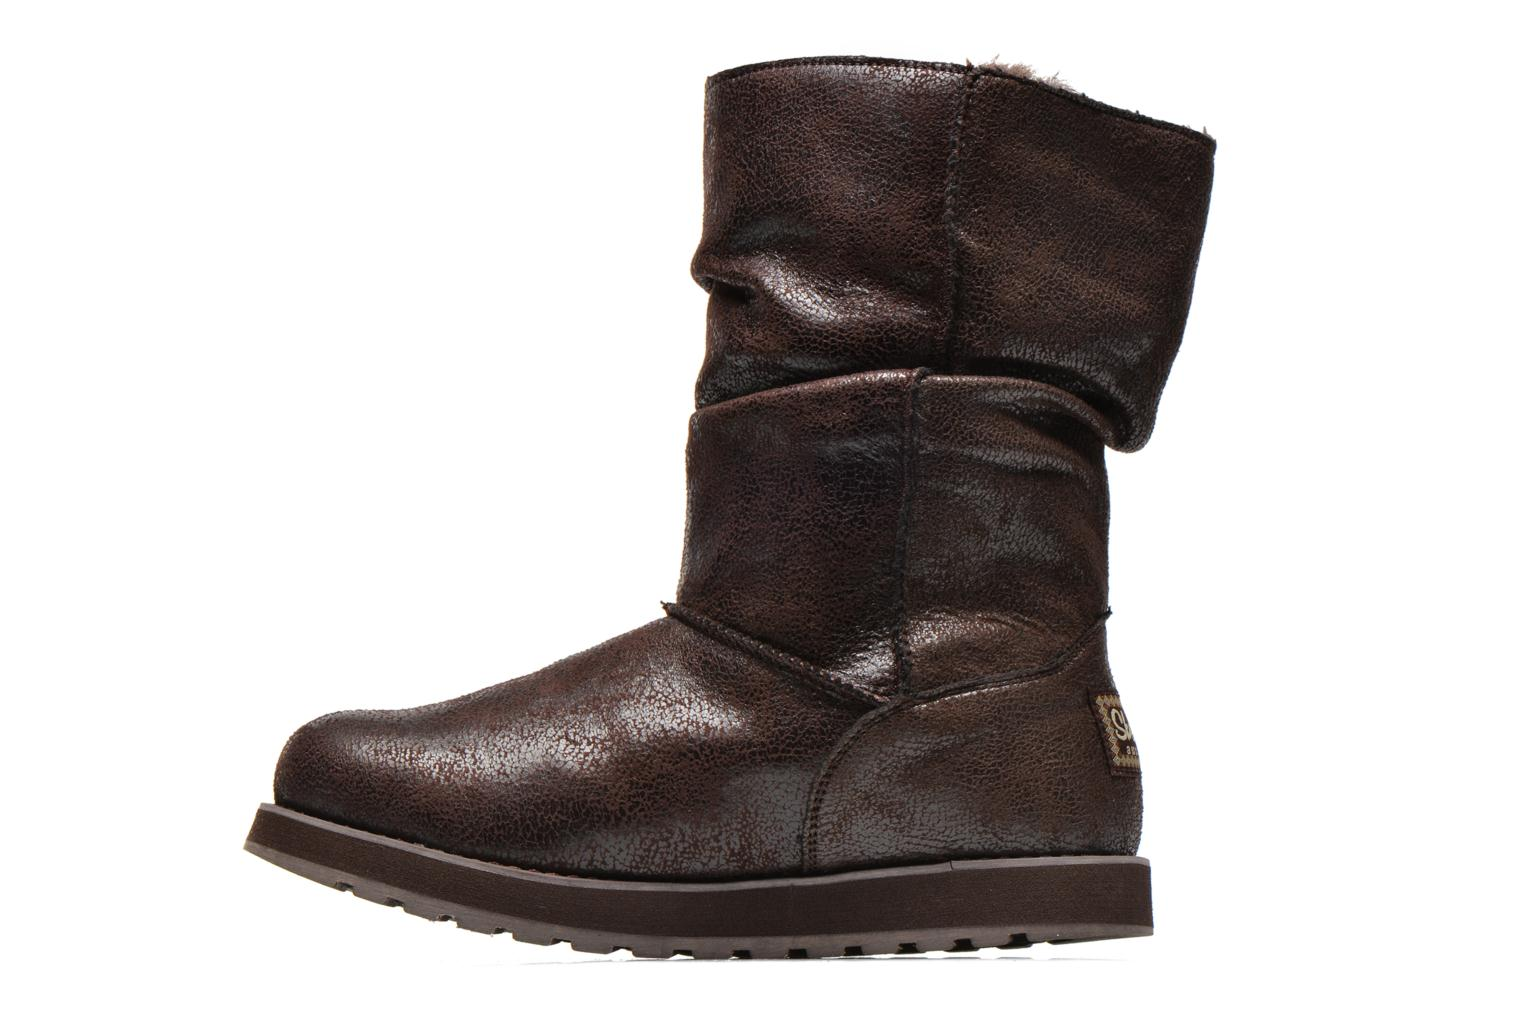 Boots en enkellaarsjes Skechers Keepsakes Leather-Esque 48367 Bruin voorkant